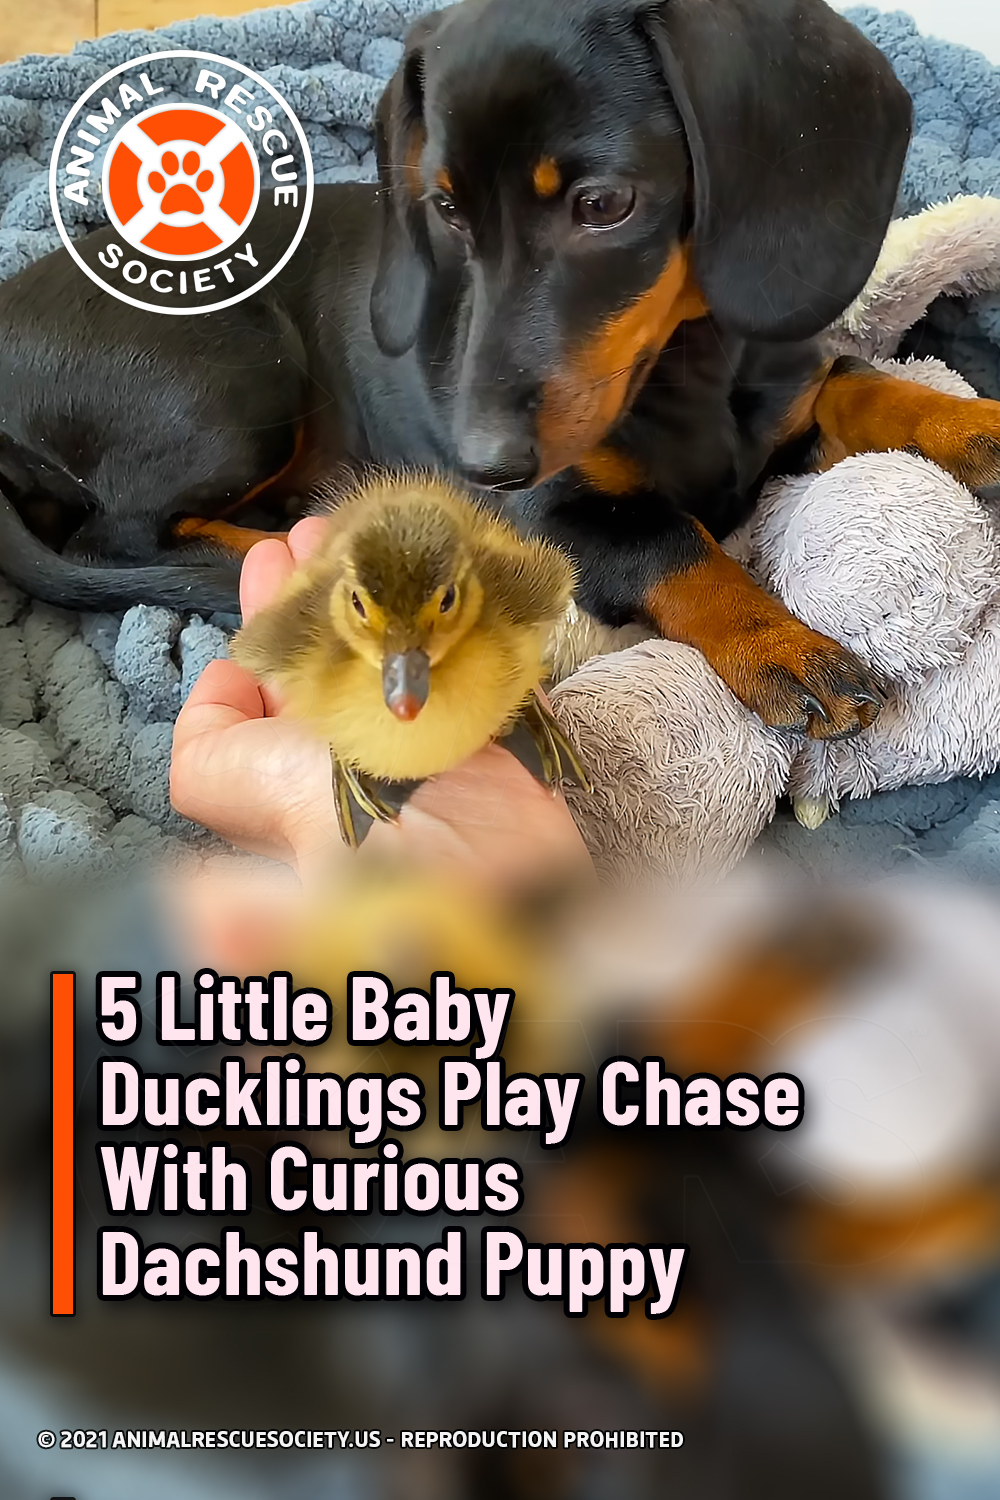 5 Little Baby Ducklings Play Chase With Curious Dachshund Puppy